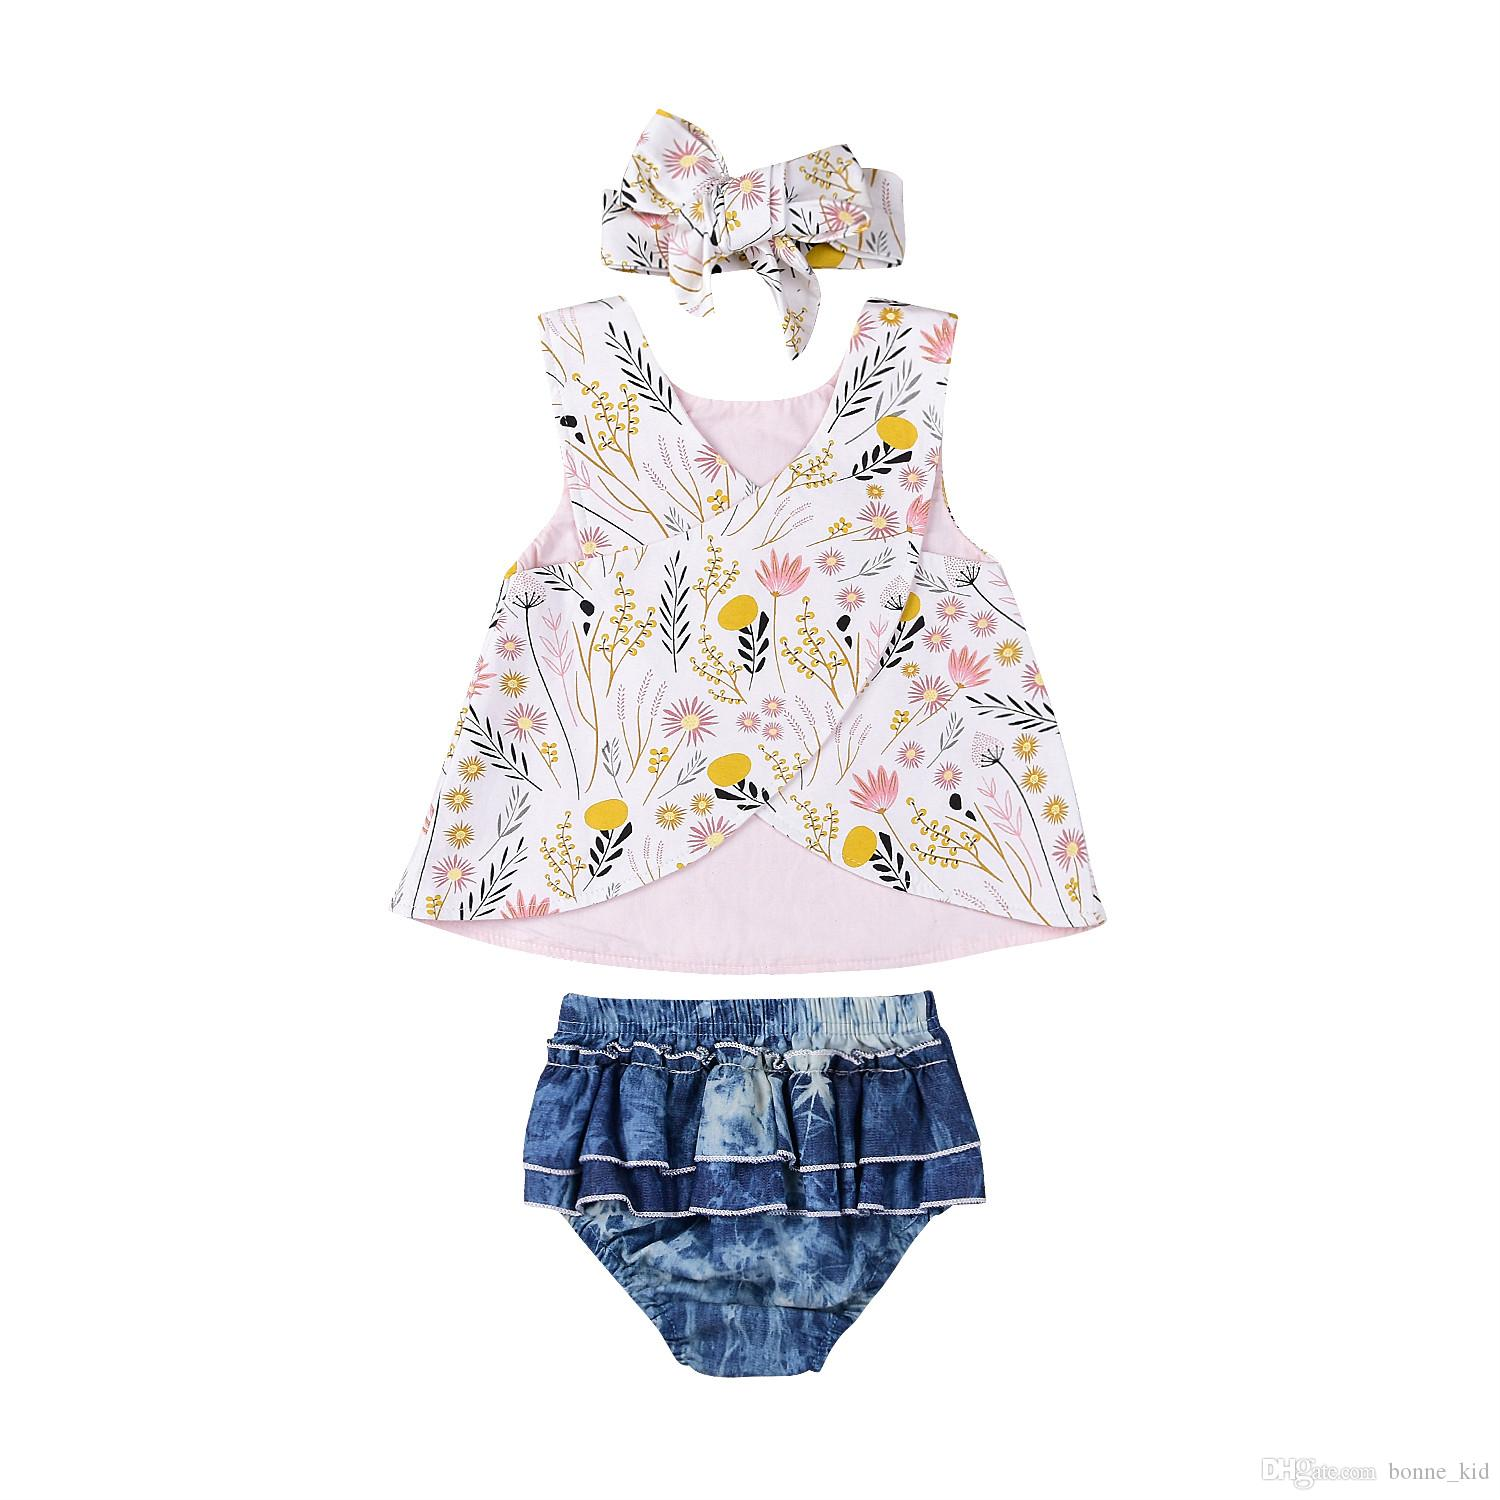 Summer Newborn Baby Girls Outfit Clothes Floral Print Tops Shorts Headband 3pcs Cute Ruffles Kids Clothes Set Toddler 0-3Y